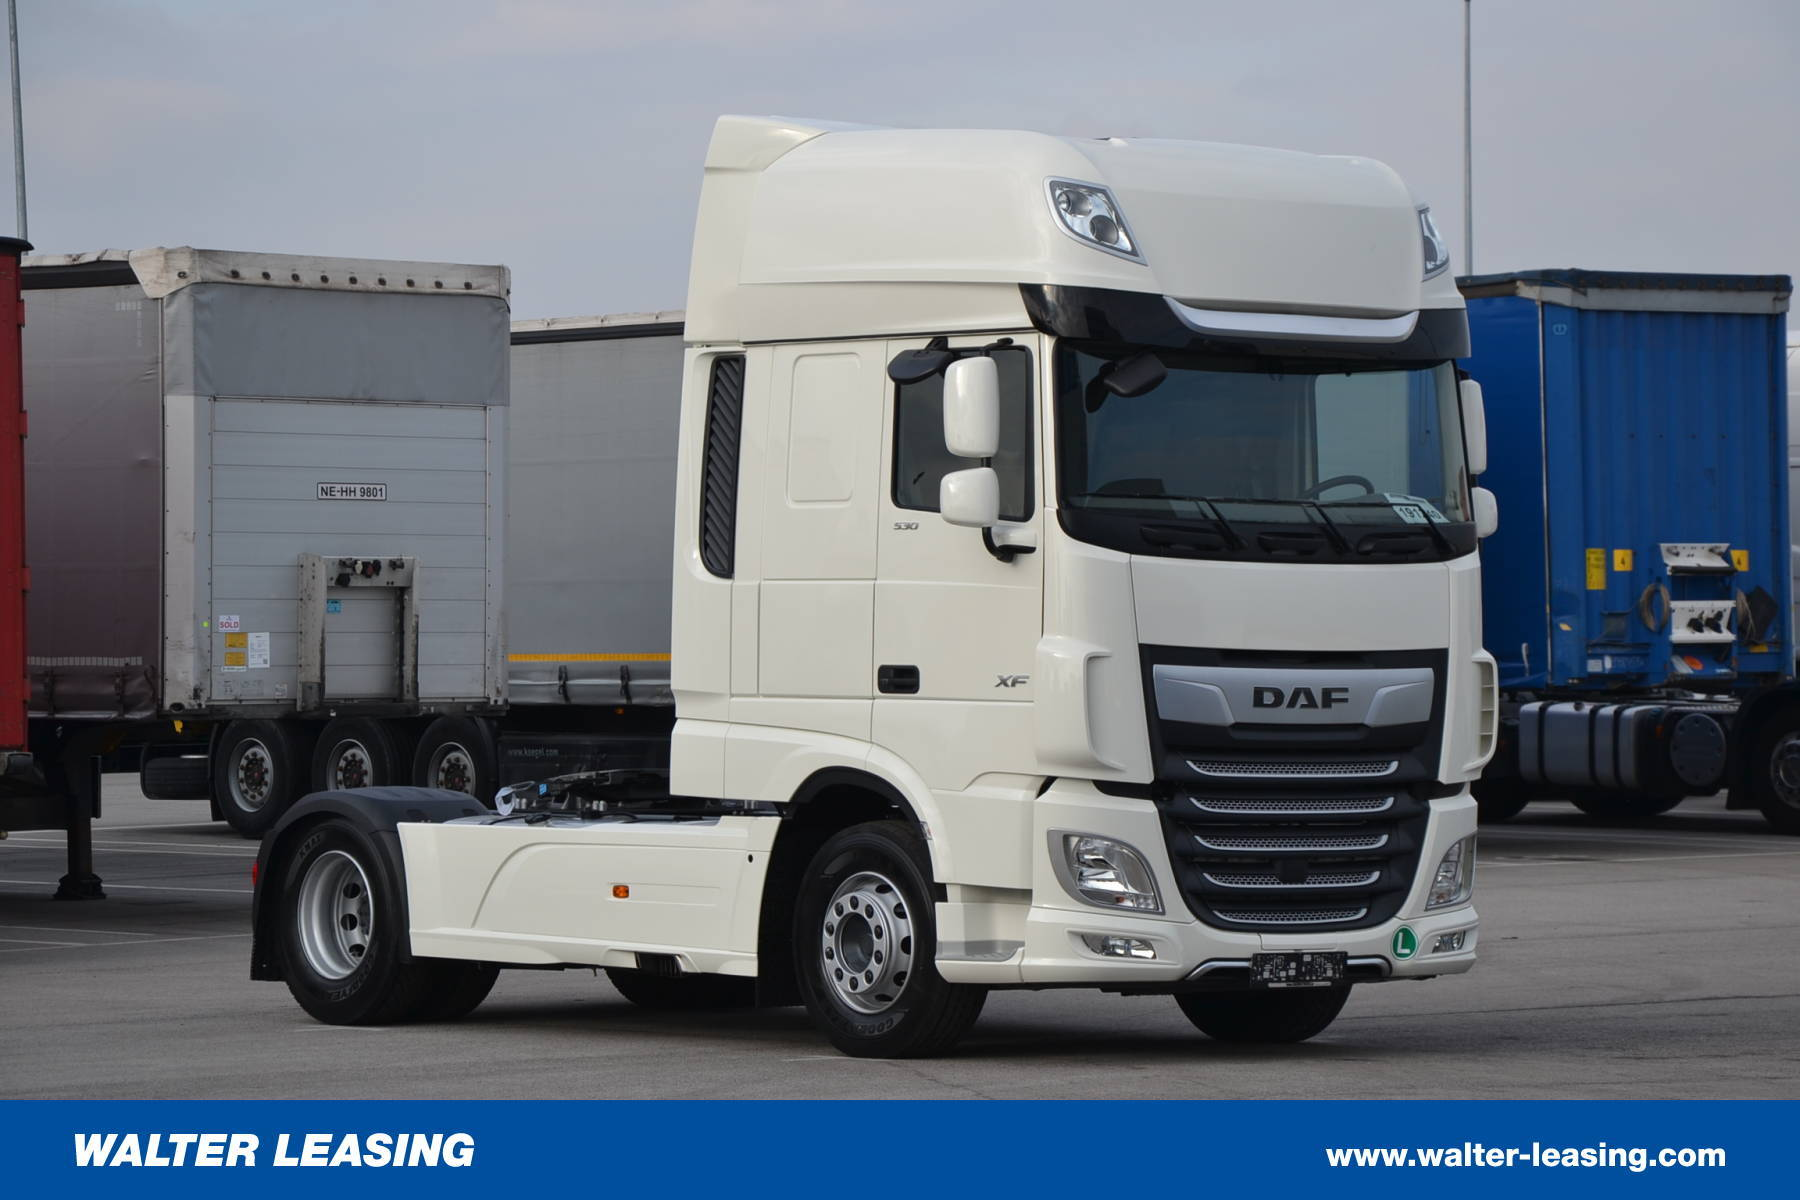 daf hgv tractor unit xf 530 ssc euro 6 new walter leasing. Black Bedroom Furniture Sets. Home Design Ideas